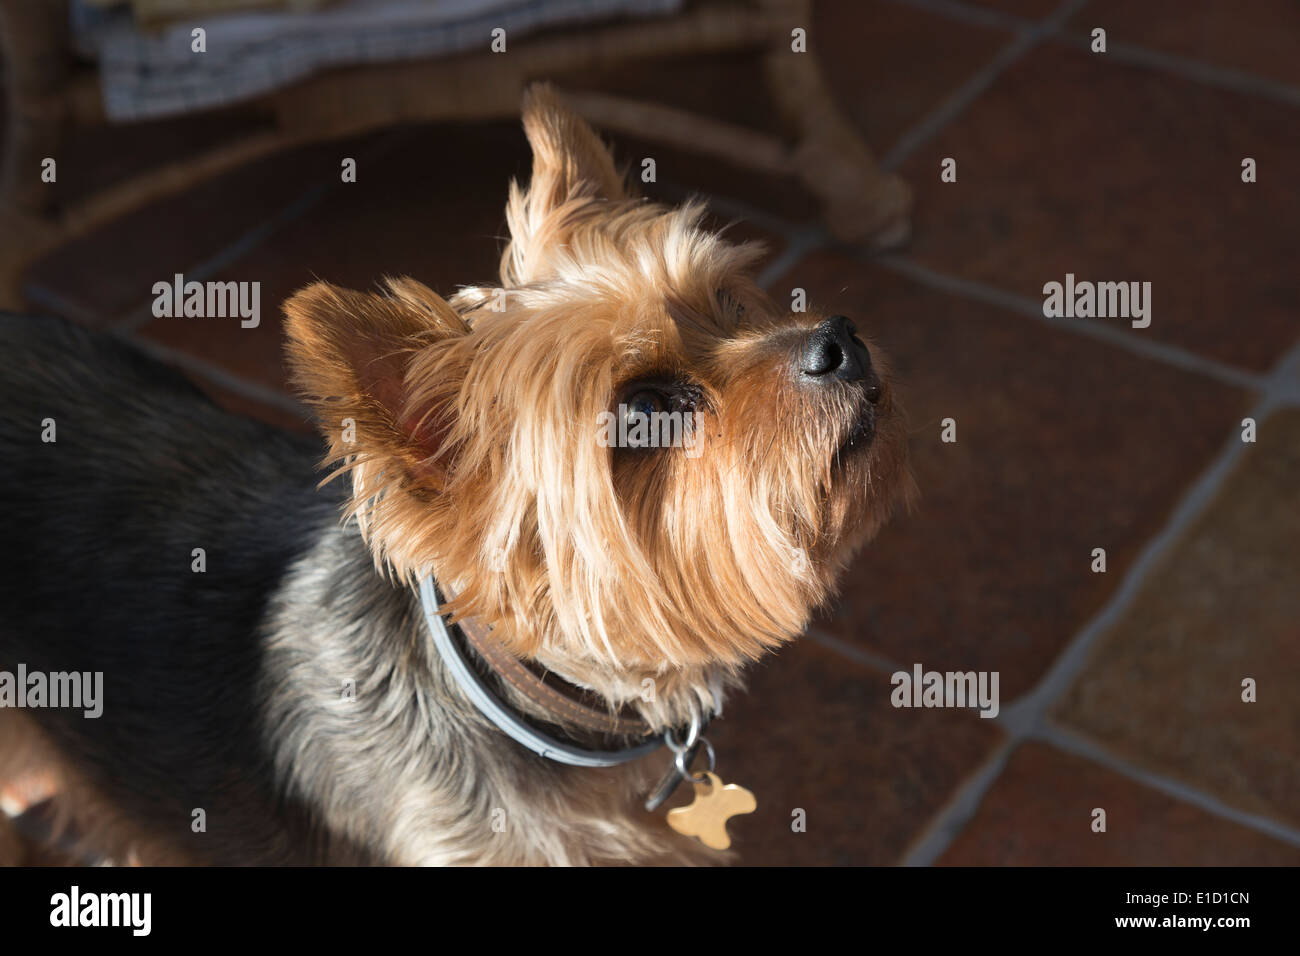 Yorkshire terrier, a small, appealing dog, looking up expectantly - Stock Image